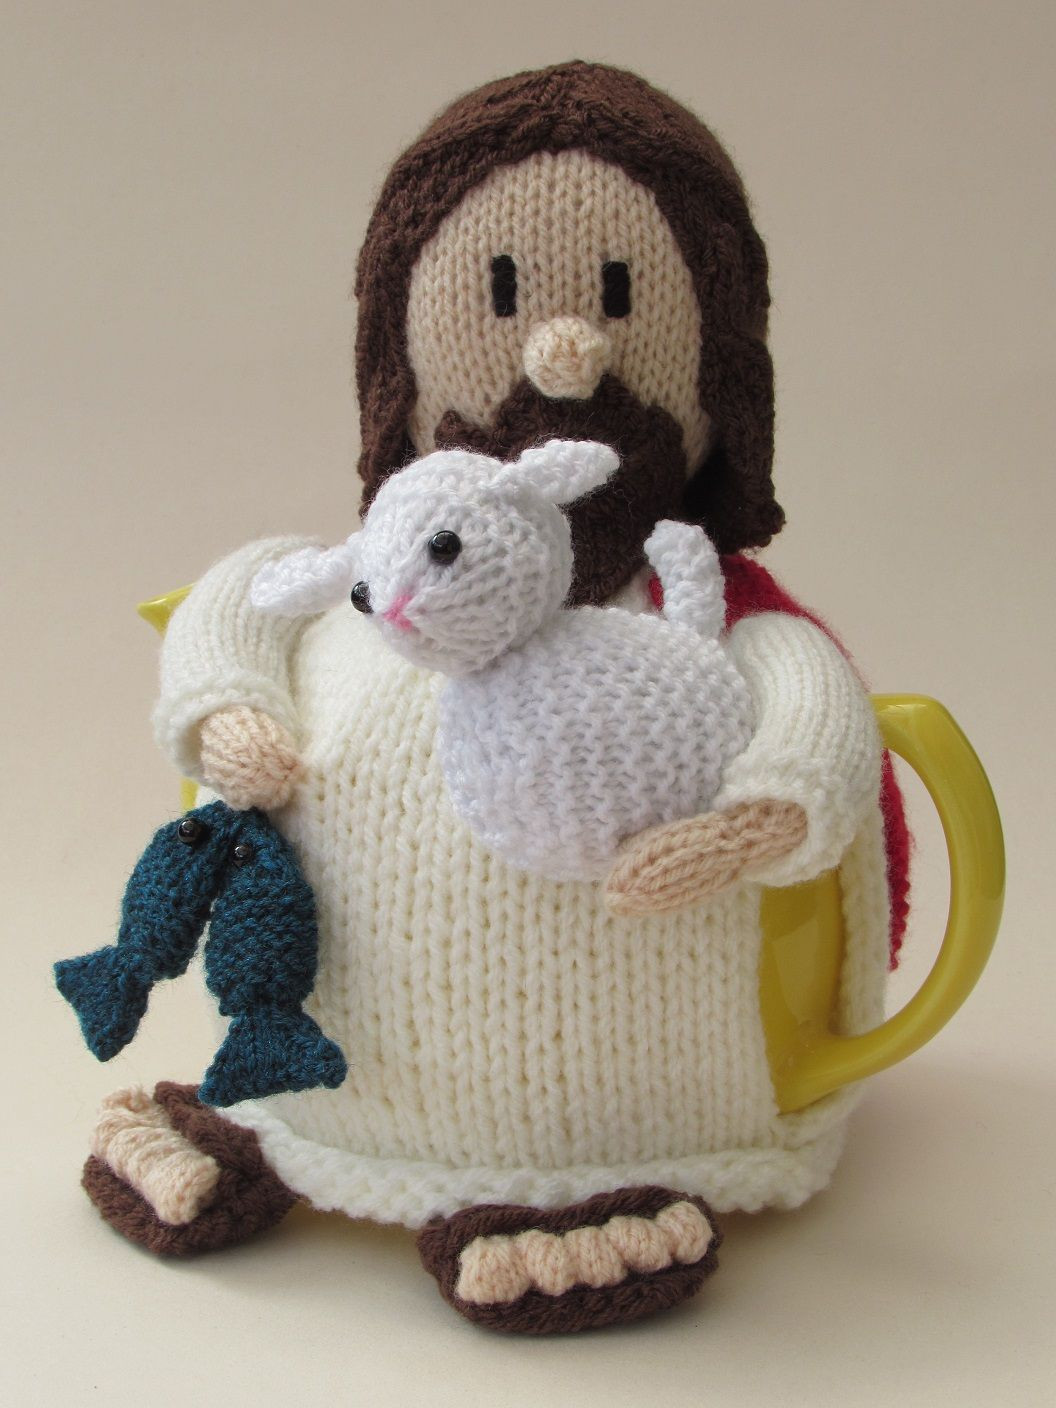 Tea Cosy Beautiful Easter Tea Cosy Jesus Tea Cosy Knitting Pattern to Knit Of Beautiful 41 Pics Tea Cosy